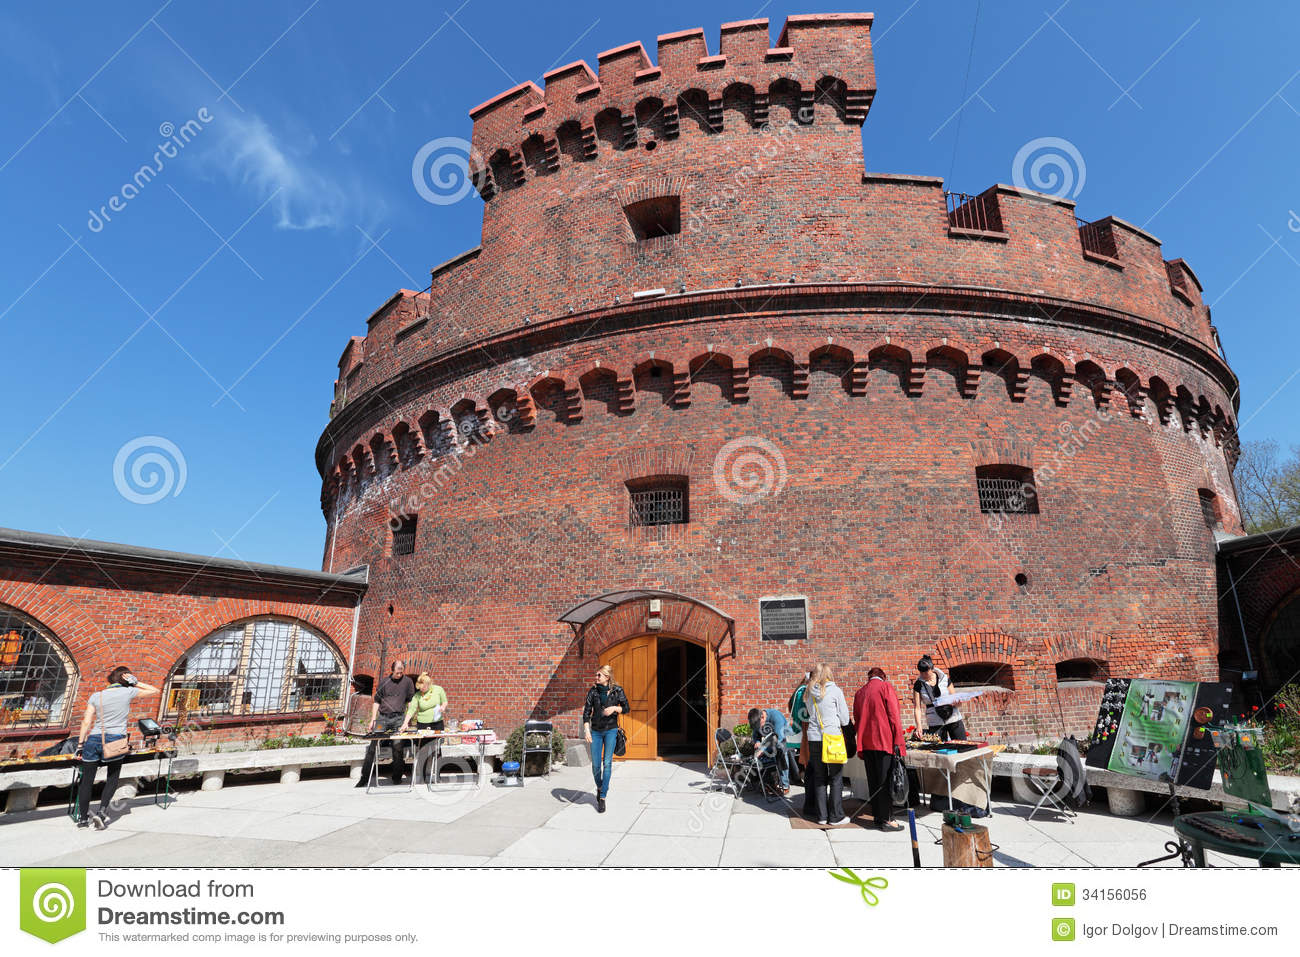 Where is Kaliningrad - the old fairy tale city 14